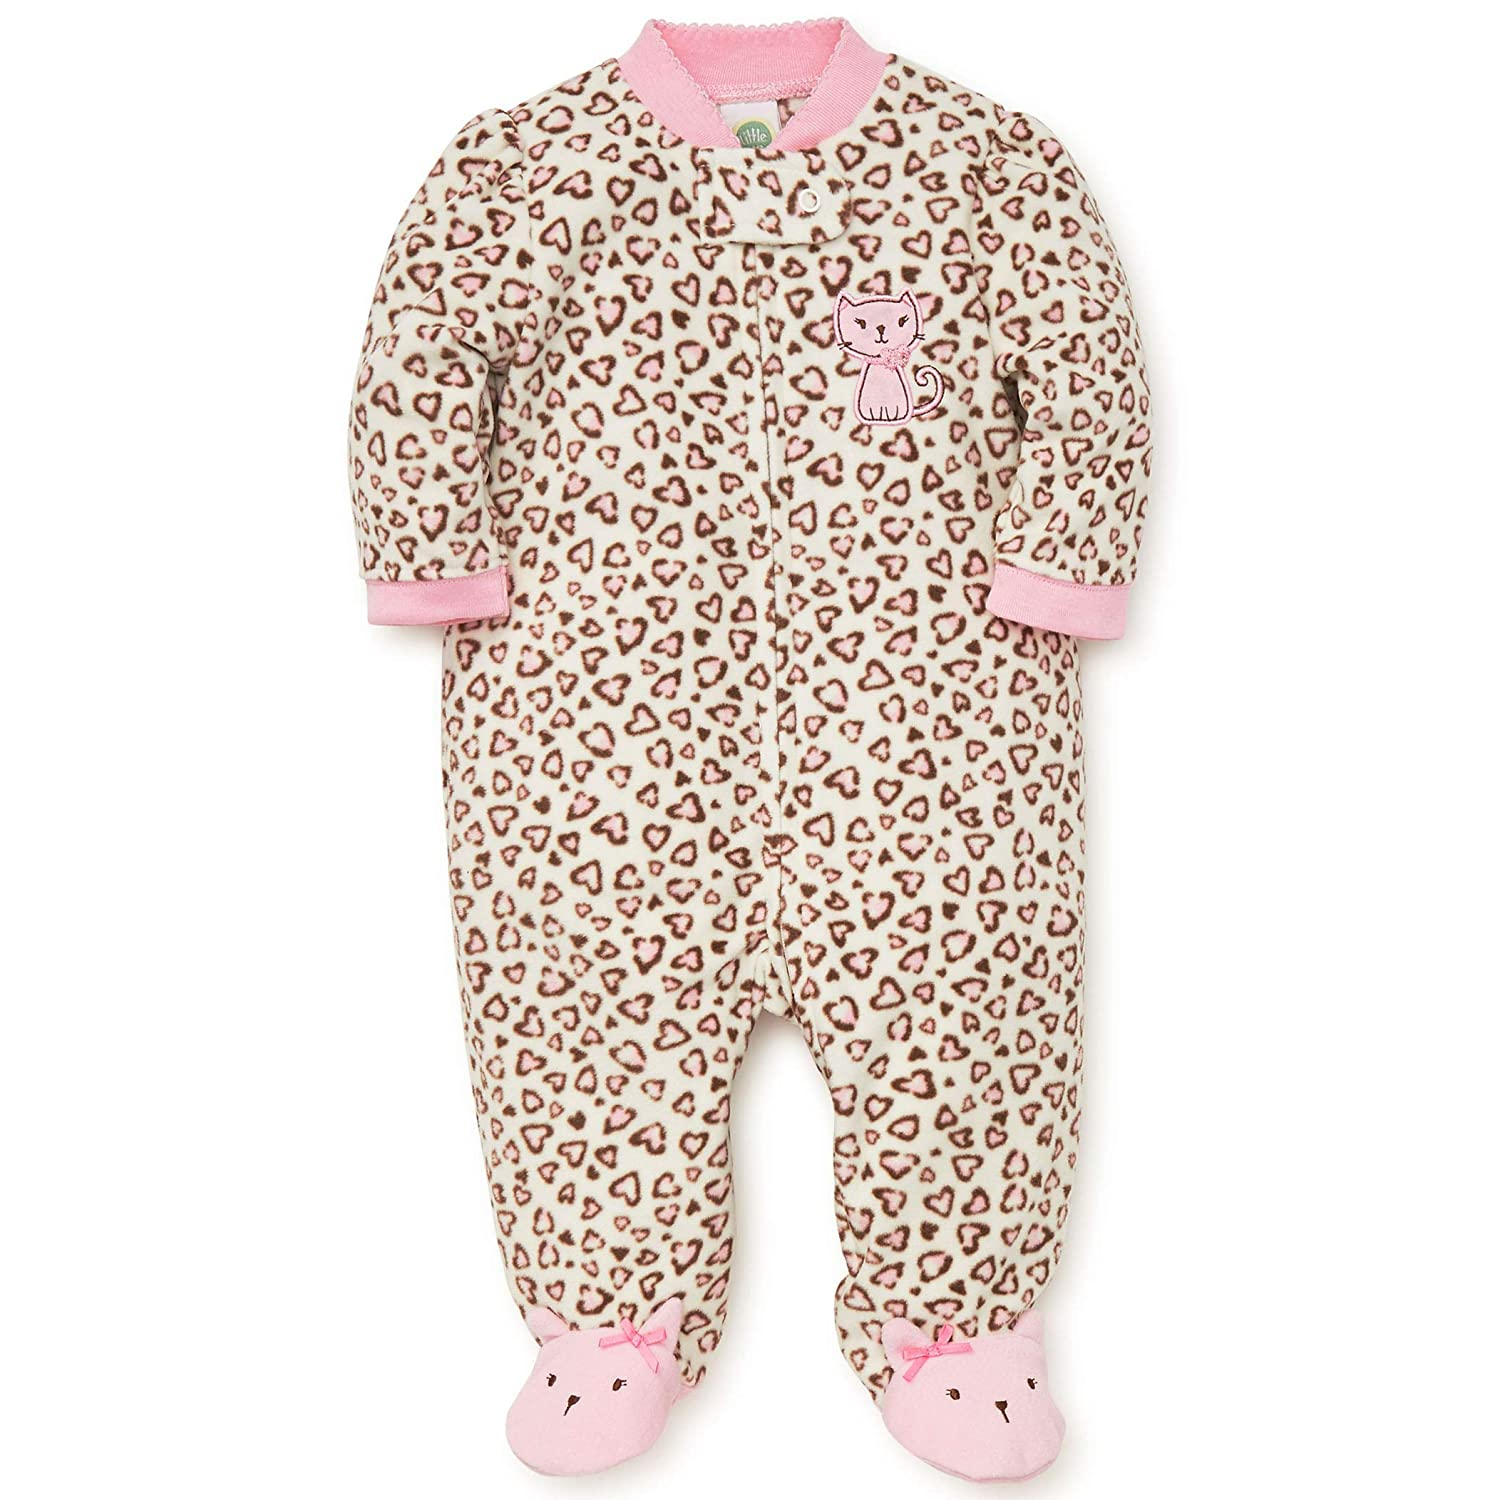 Amazon.com  Little Me Warm Fleece Baby Pajamas Footed Blanket Sleeper Footie  Leopard Print Kitty 9 Months  Baby 0d9a123e5